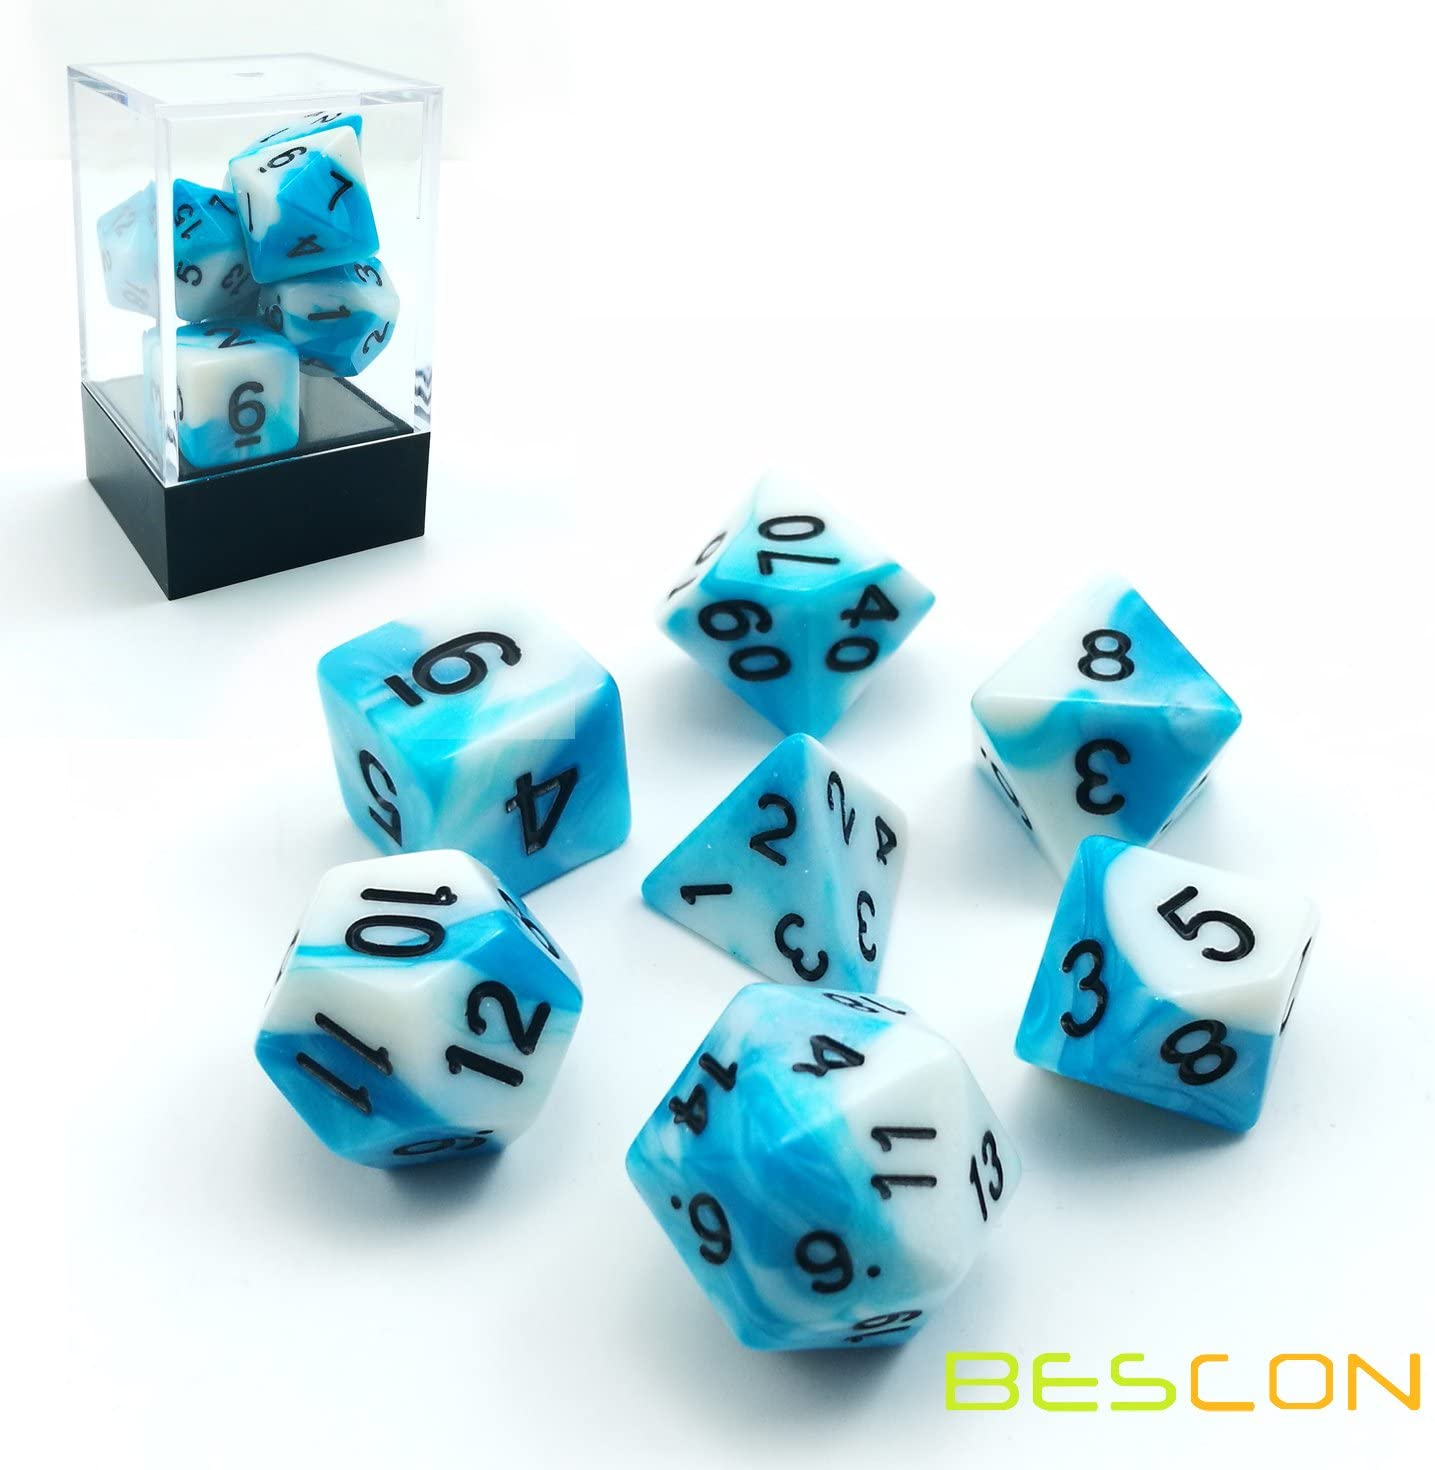 Bescon Gemini Polyhedral Dice Set Icy Track, Two-Tone RPG Dice Set of 7 d4 d6 d8 d10 d12 d20 d% Brick Box Pack: Amazon.es: Juguetes y juegos